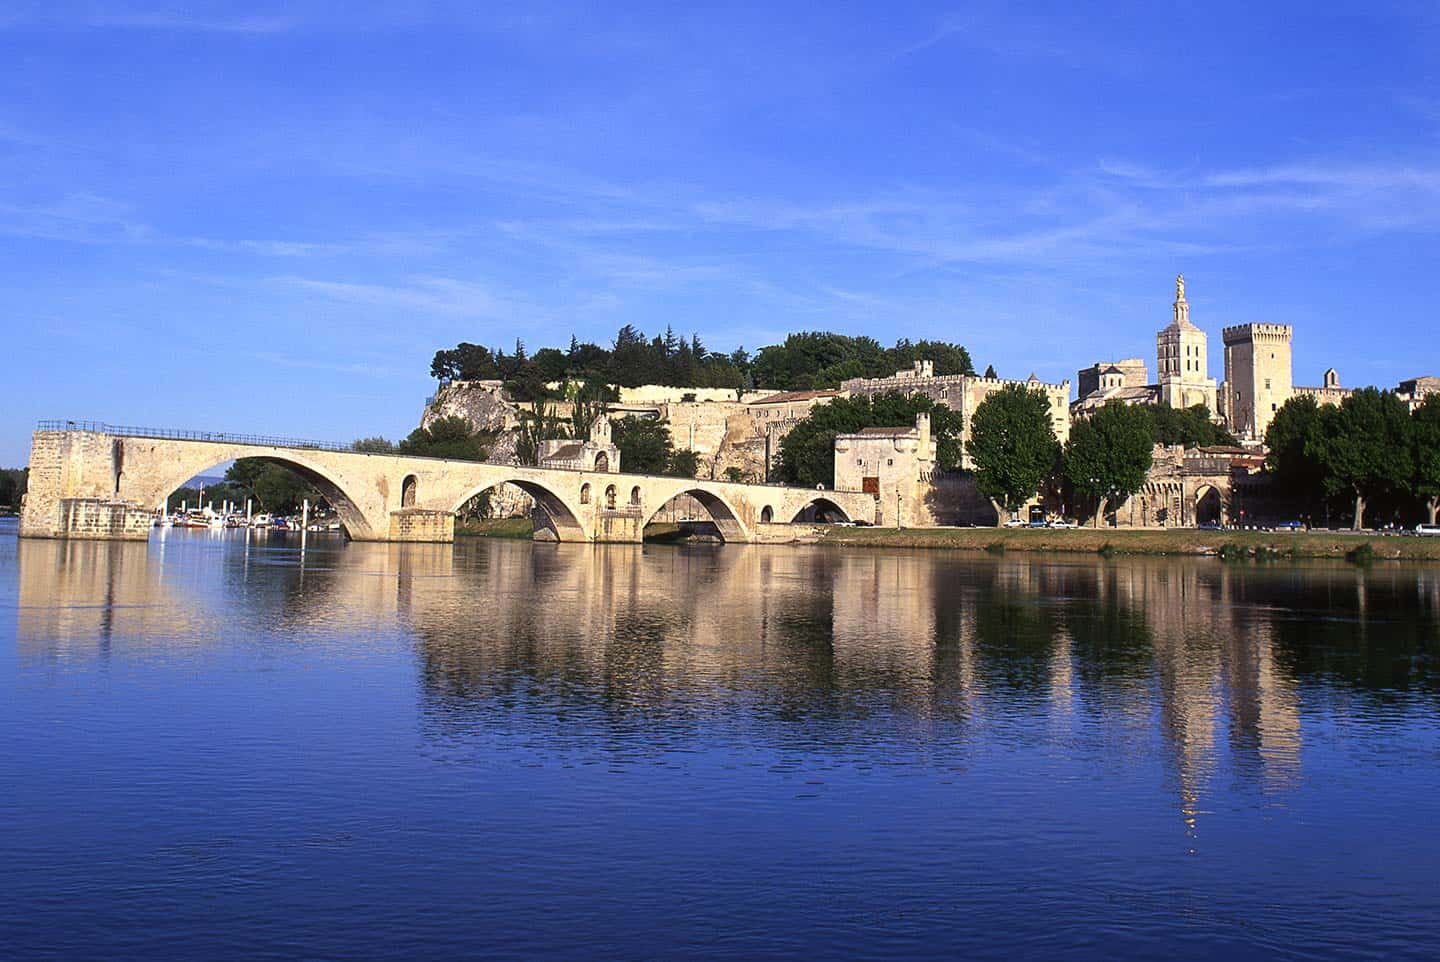 Image of the Palais des Papes and Pont d'Avignon